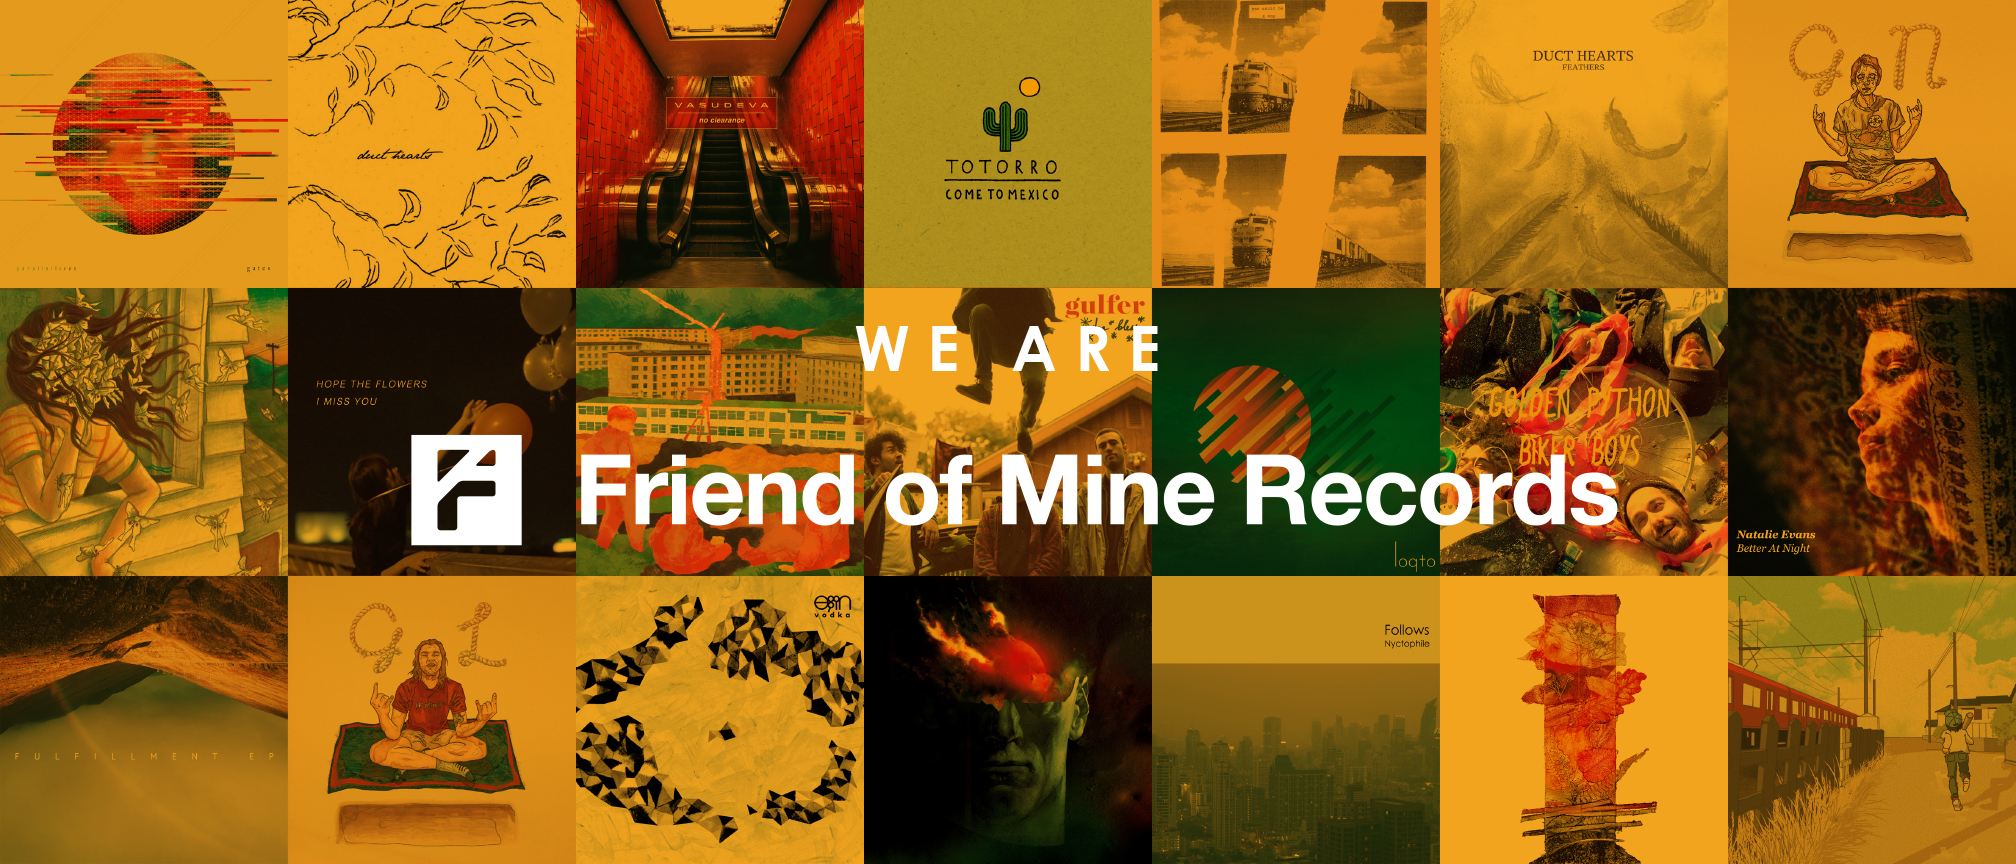 WE ARE Friend of Mine Records